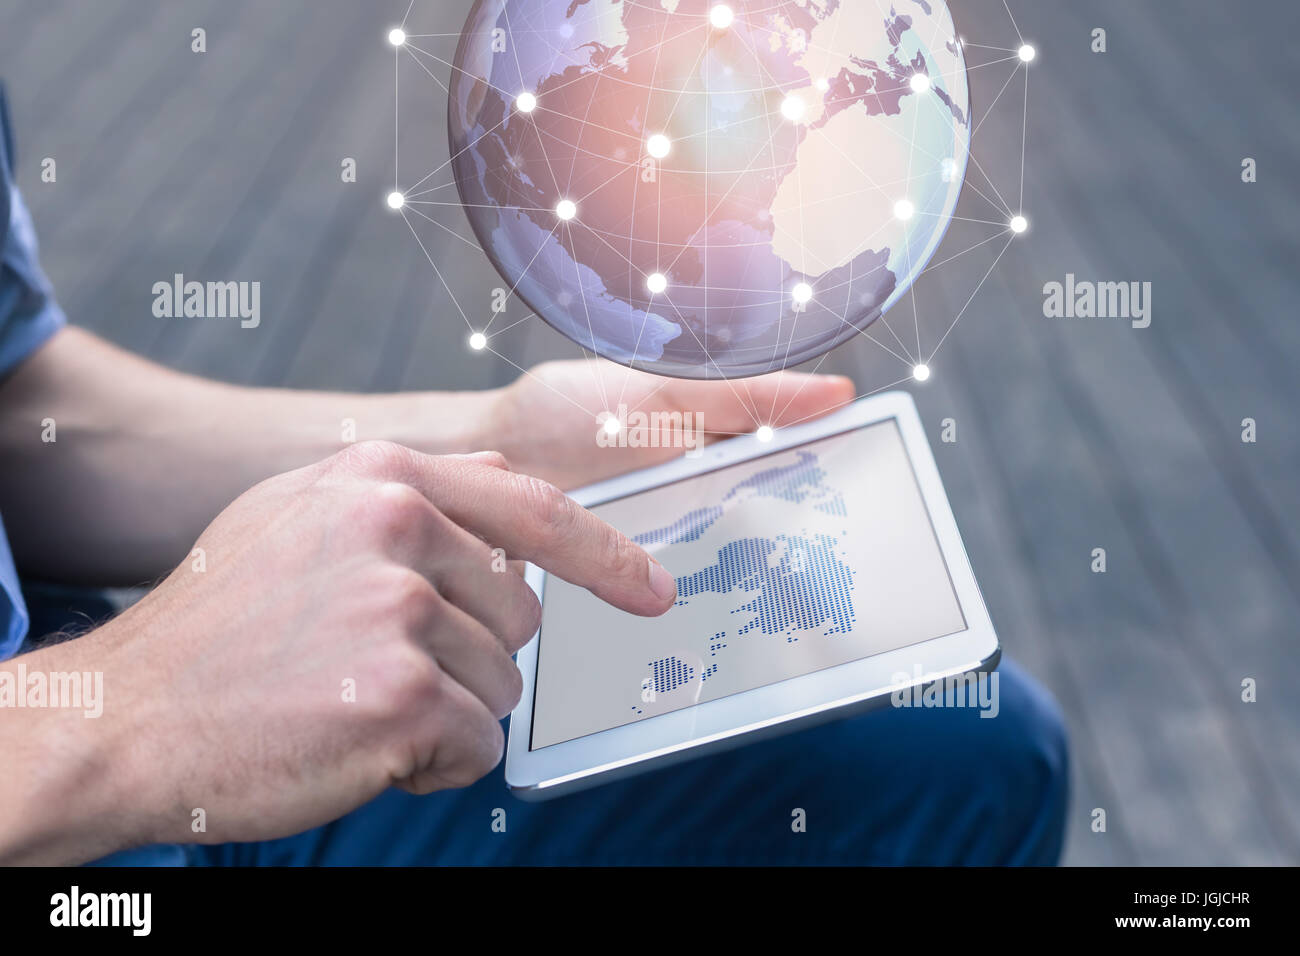 World wide business concept with a person using a digital tablet computer with augmented reality (AR) to visualize - Stock Image